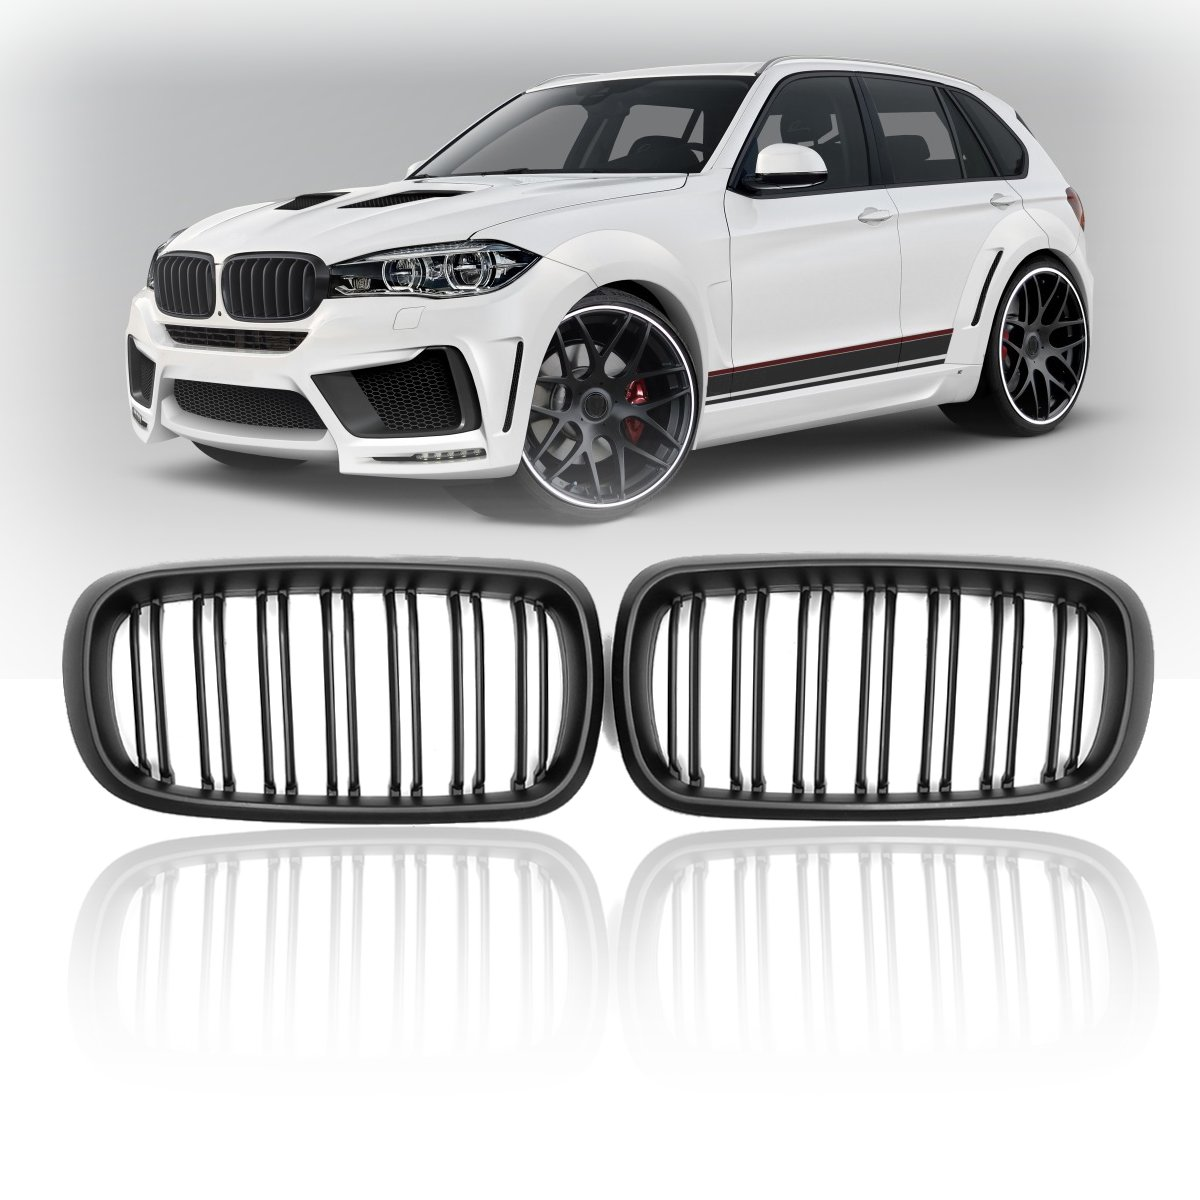 Pair New Matte Gloss Black Double 2 Slat Line Front Kidney Grill Grille Replacement For BMW F15/F16 X5 X6 2014 2015 2016 2017Pair New Matte Gloss Black Double 2 Slat Line Front Kidney Grill Grille Replacement For BMW F15/F16 X5 X6 2014 2015 2016 2017